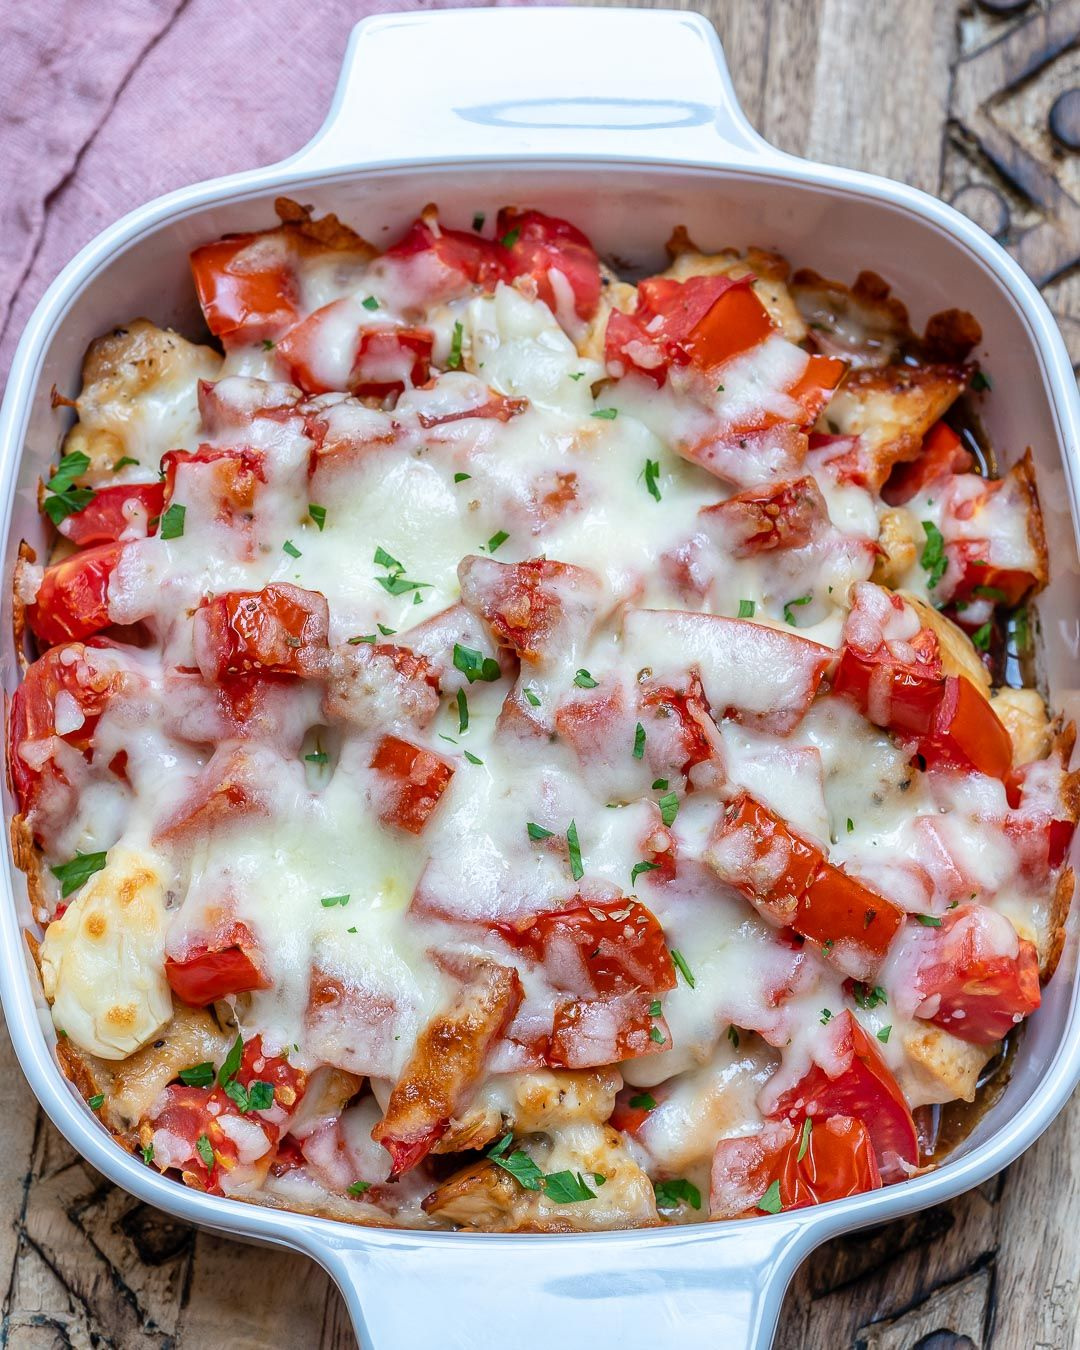 Bruschetta Chicken Casserole for a Delicious Clean Eating Dinner Idea!